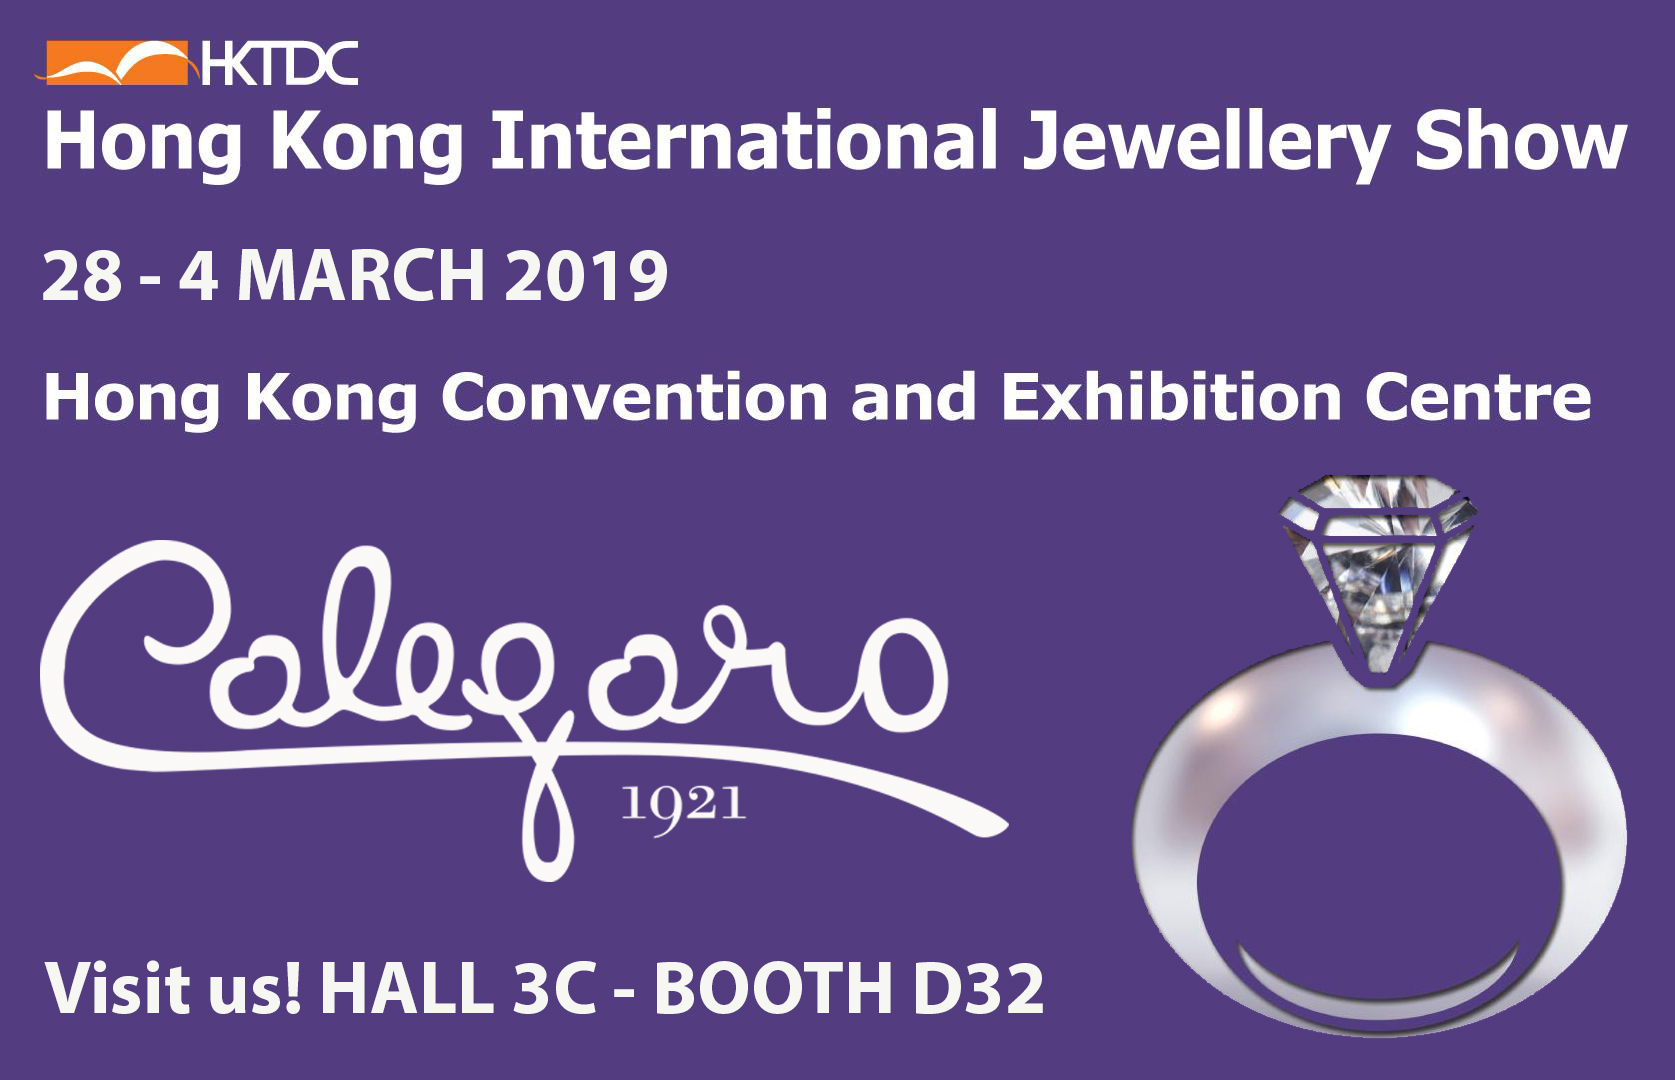 Hong Kong International Jewellery Show 2019